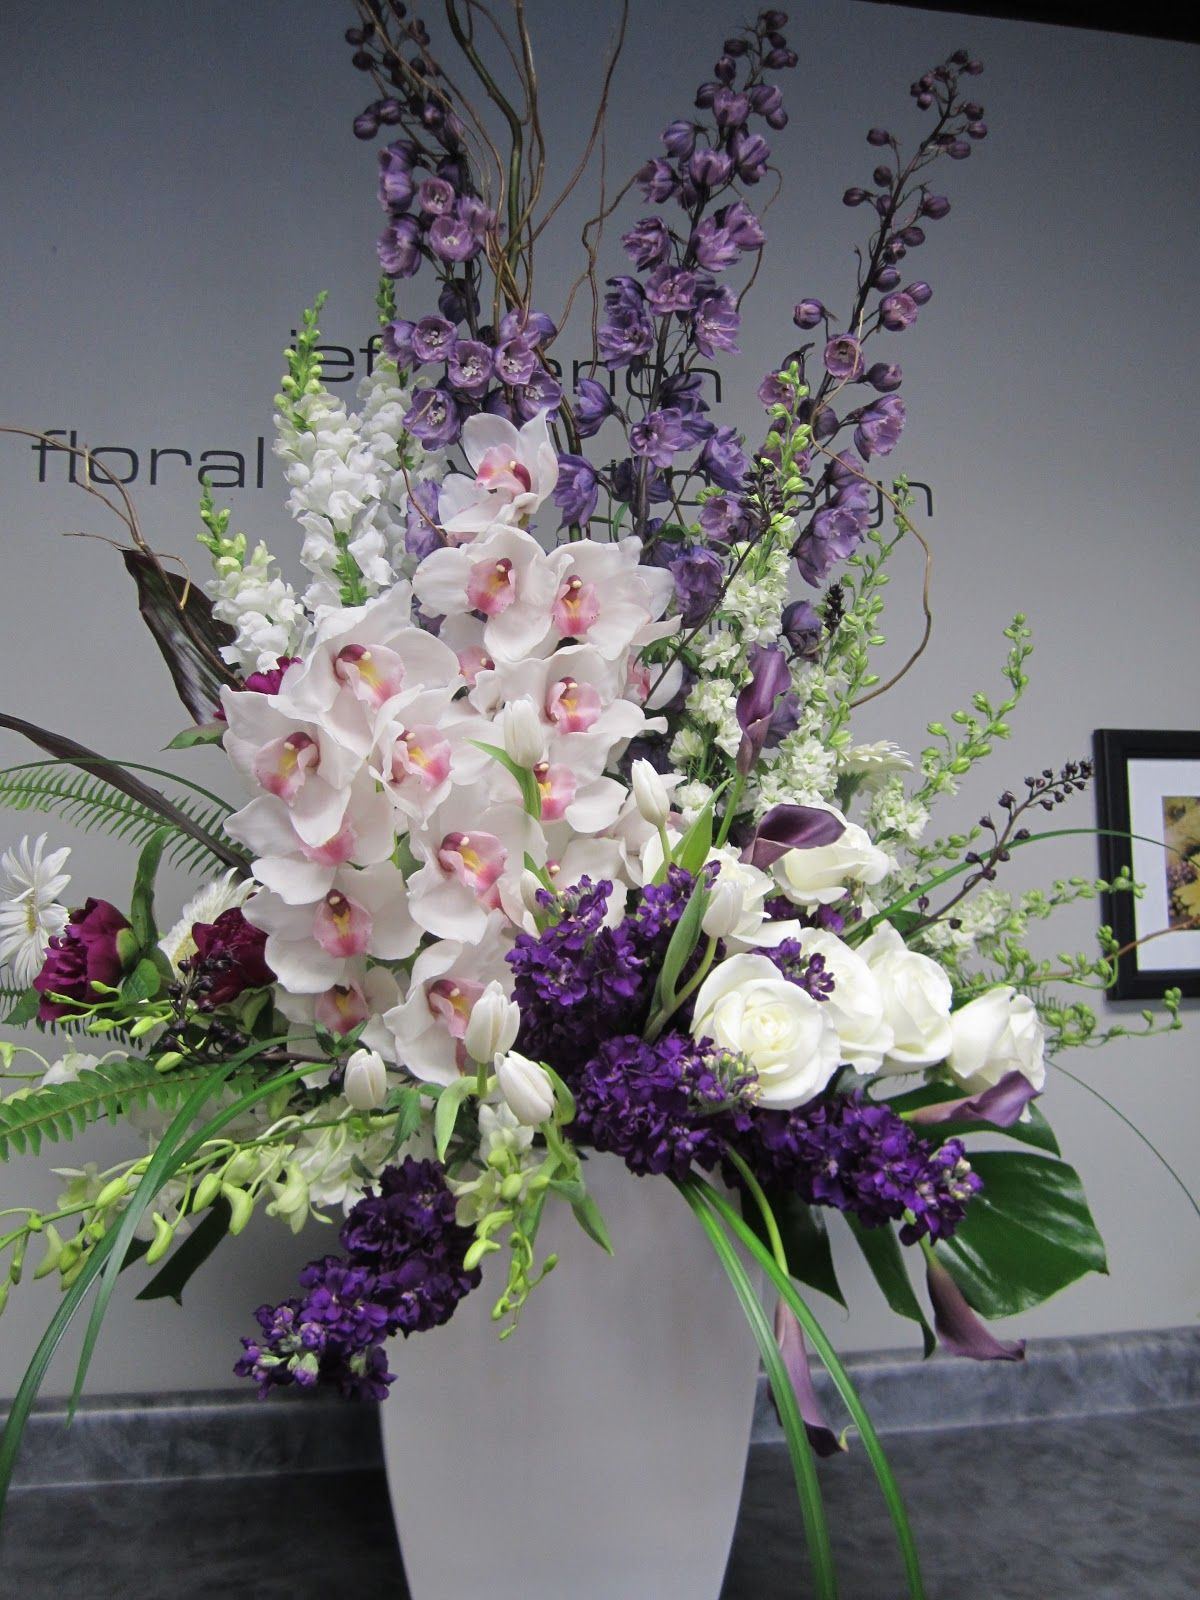 Jeff french floral event design funeral flowers floral designs jeff french floral event design funeral flowers izmirmasajfo Gallery